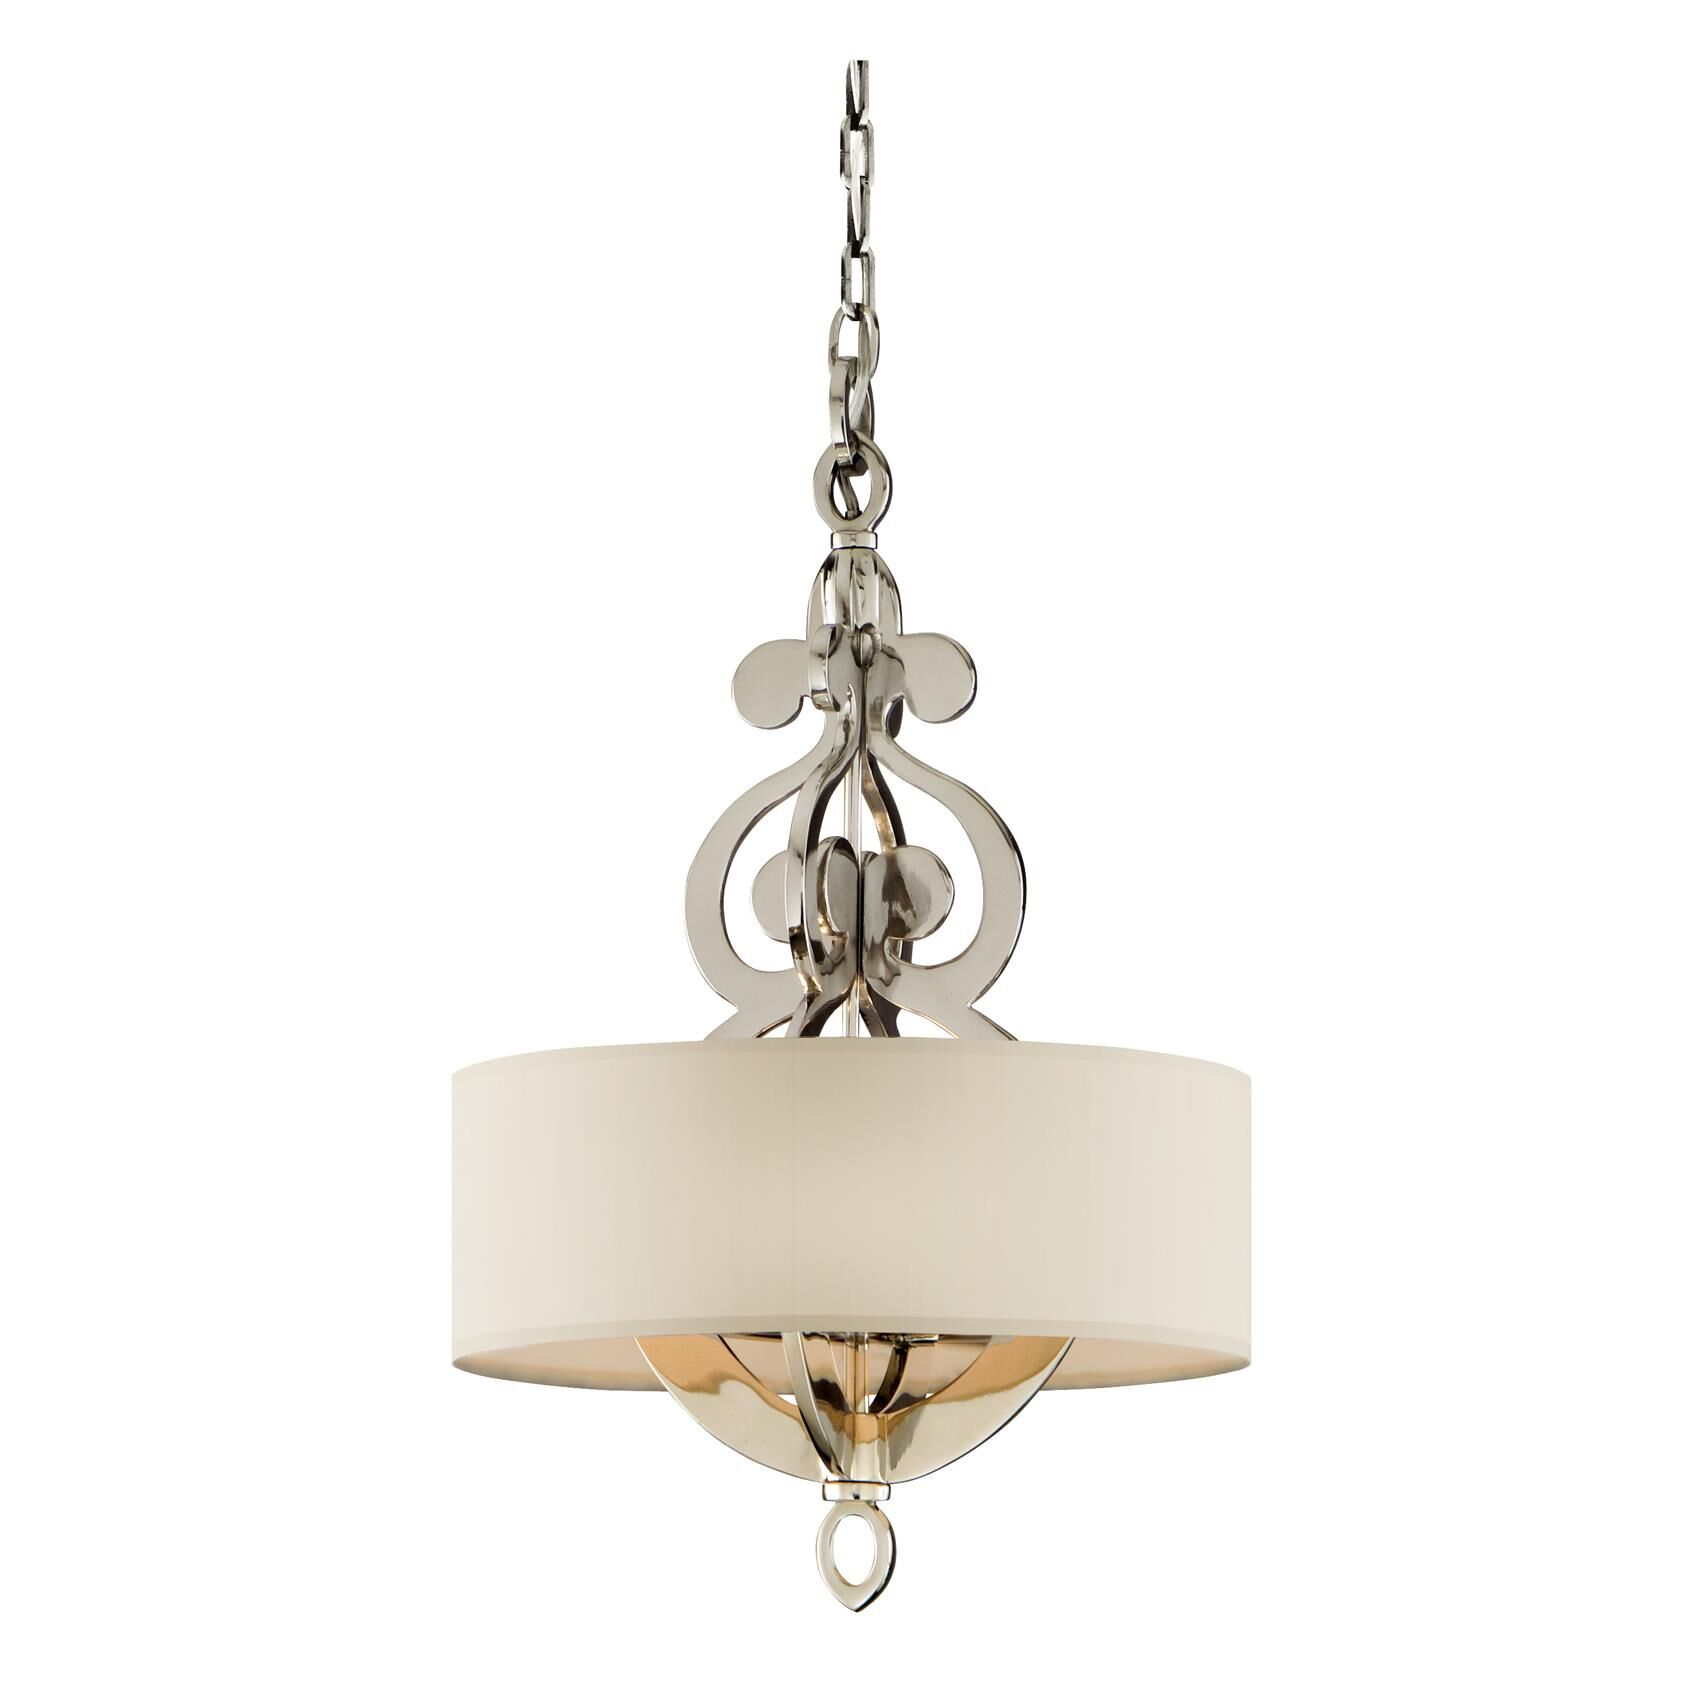 Corbett Lighting Olivia 13 Inch Mini Pendant Olivia - 102-44 - Transitional Mini Pendant